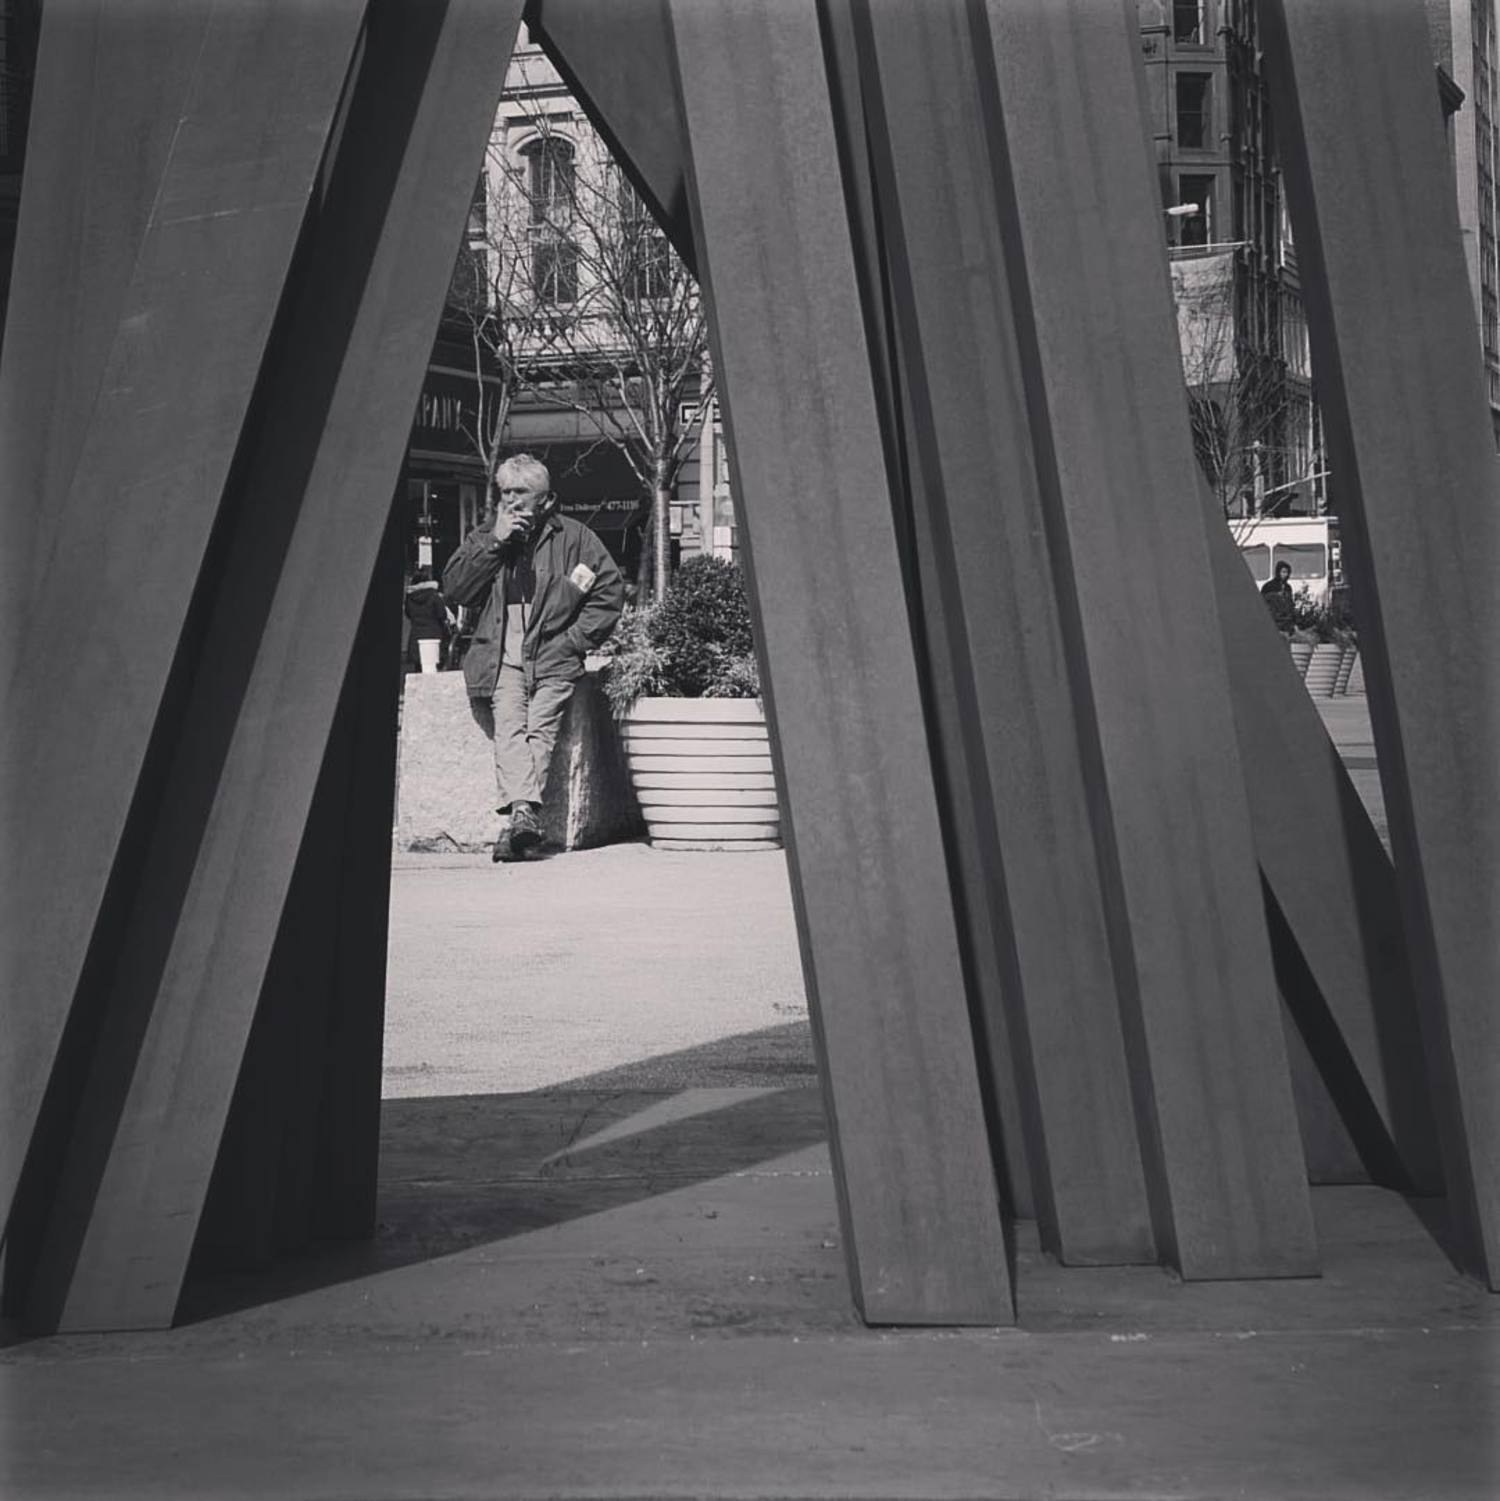 Break between the lines #unionsquare #newyork_instagram #bw #disorder #9unevenangles #bernarvenet #sculpture #vscocam #leica